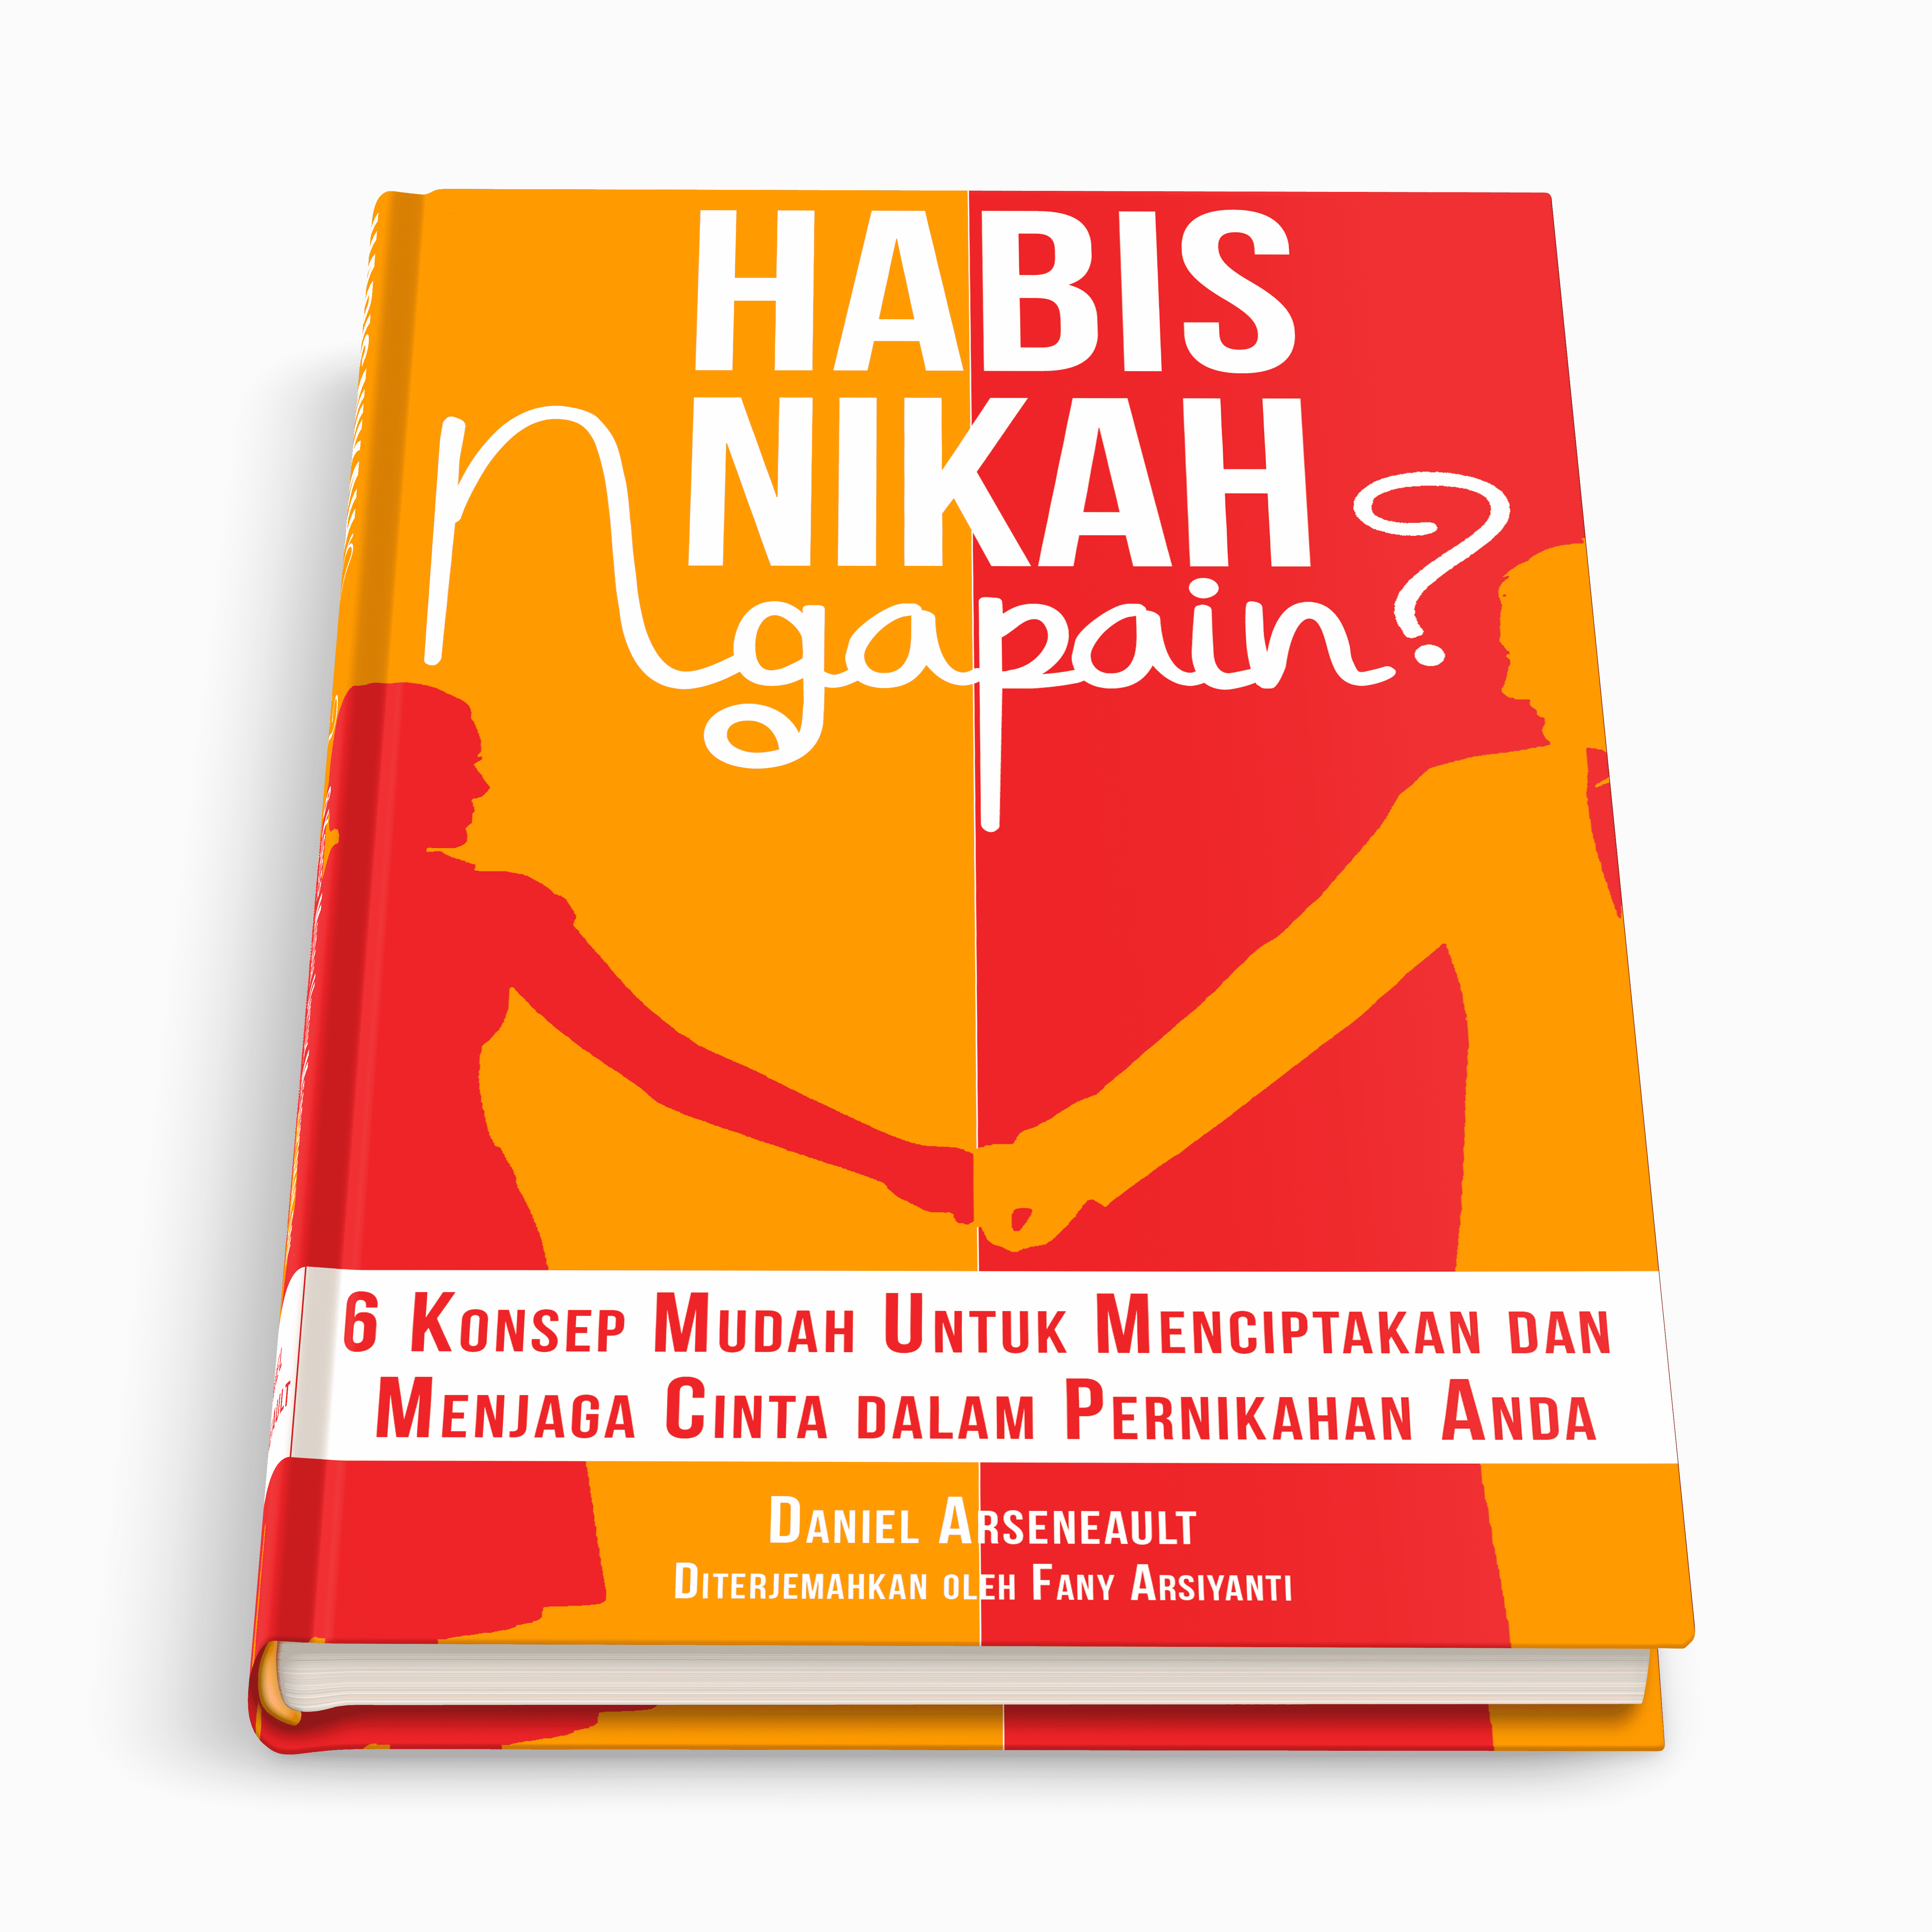 After Married, What Next? - Habis Nikah, Ngapain? - BookMattic